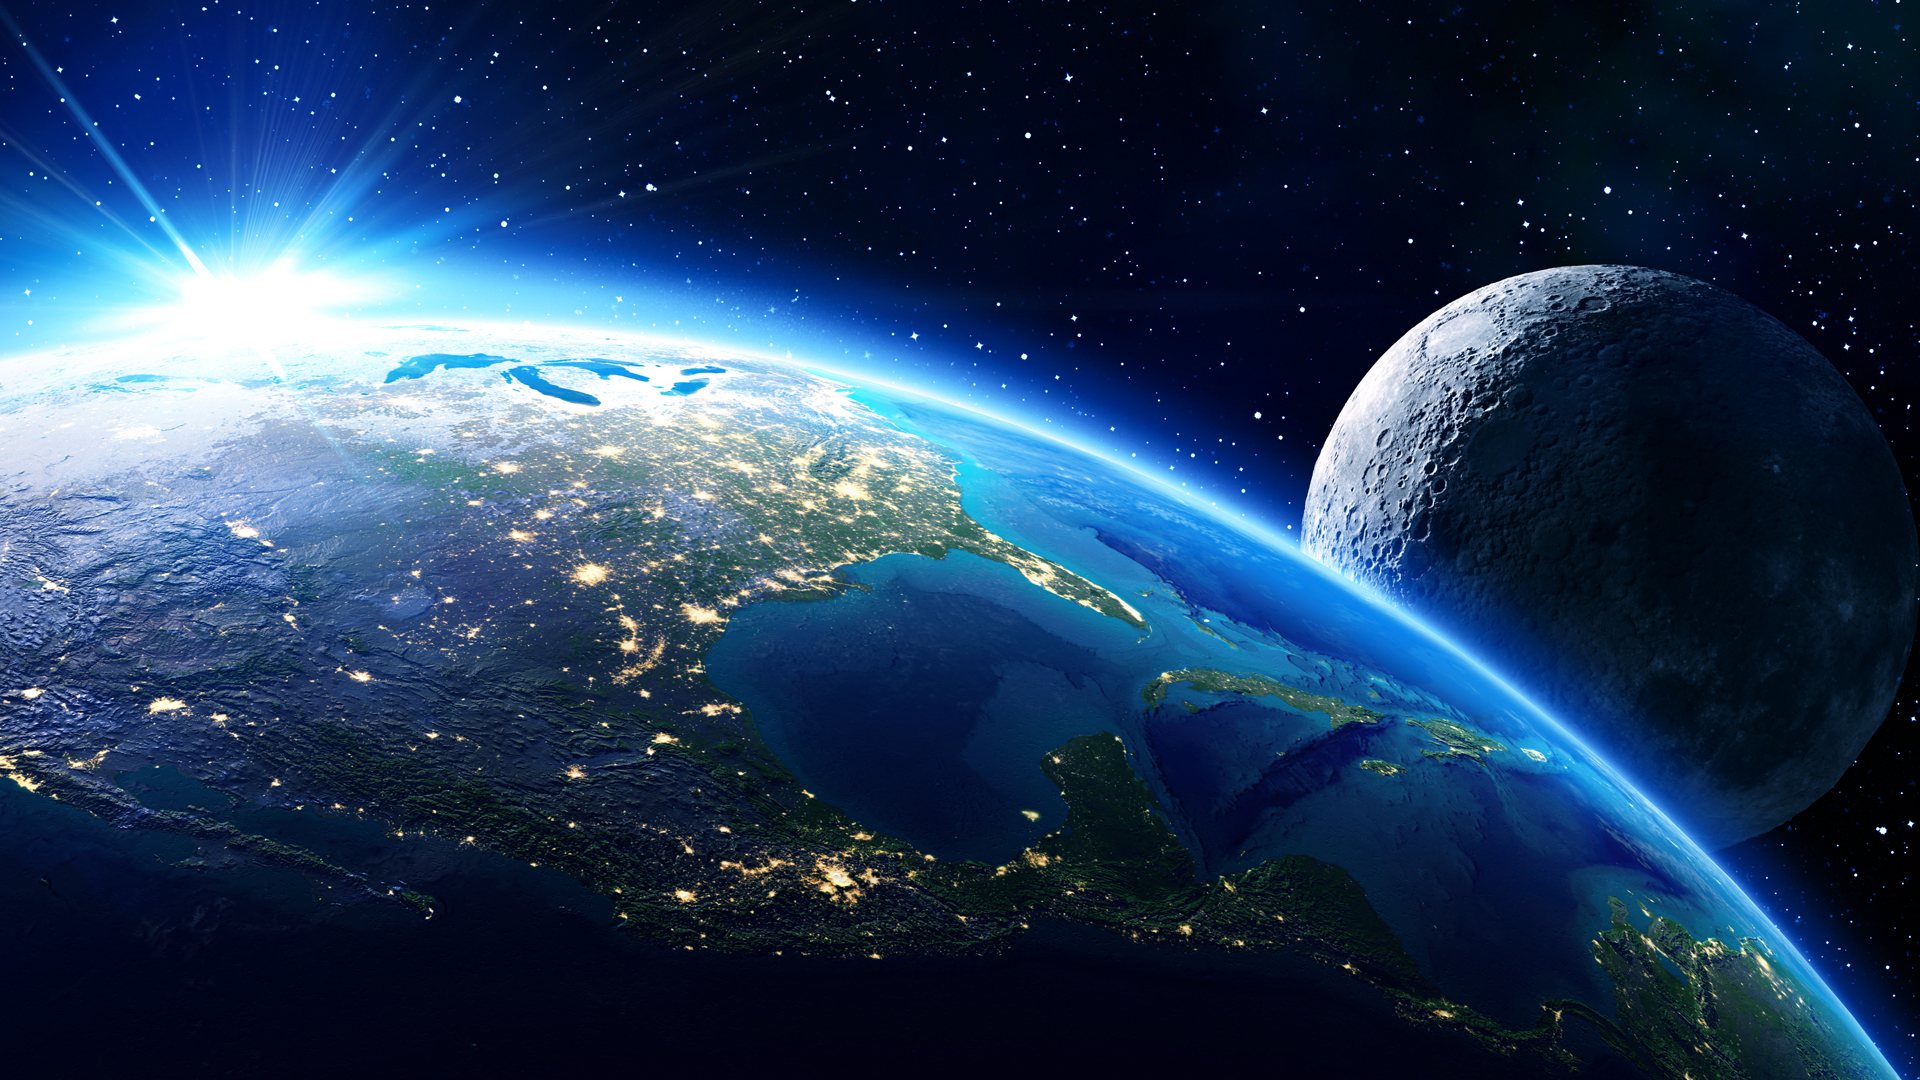 North America and the moon are seen in this file photo. (Credit: RomoloTavani / iStock-Getty Images Plus)